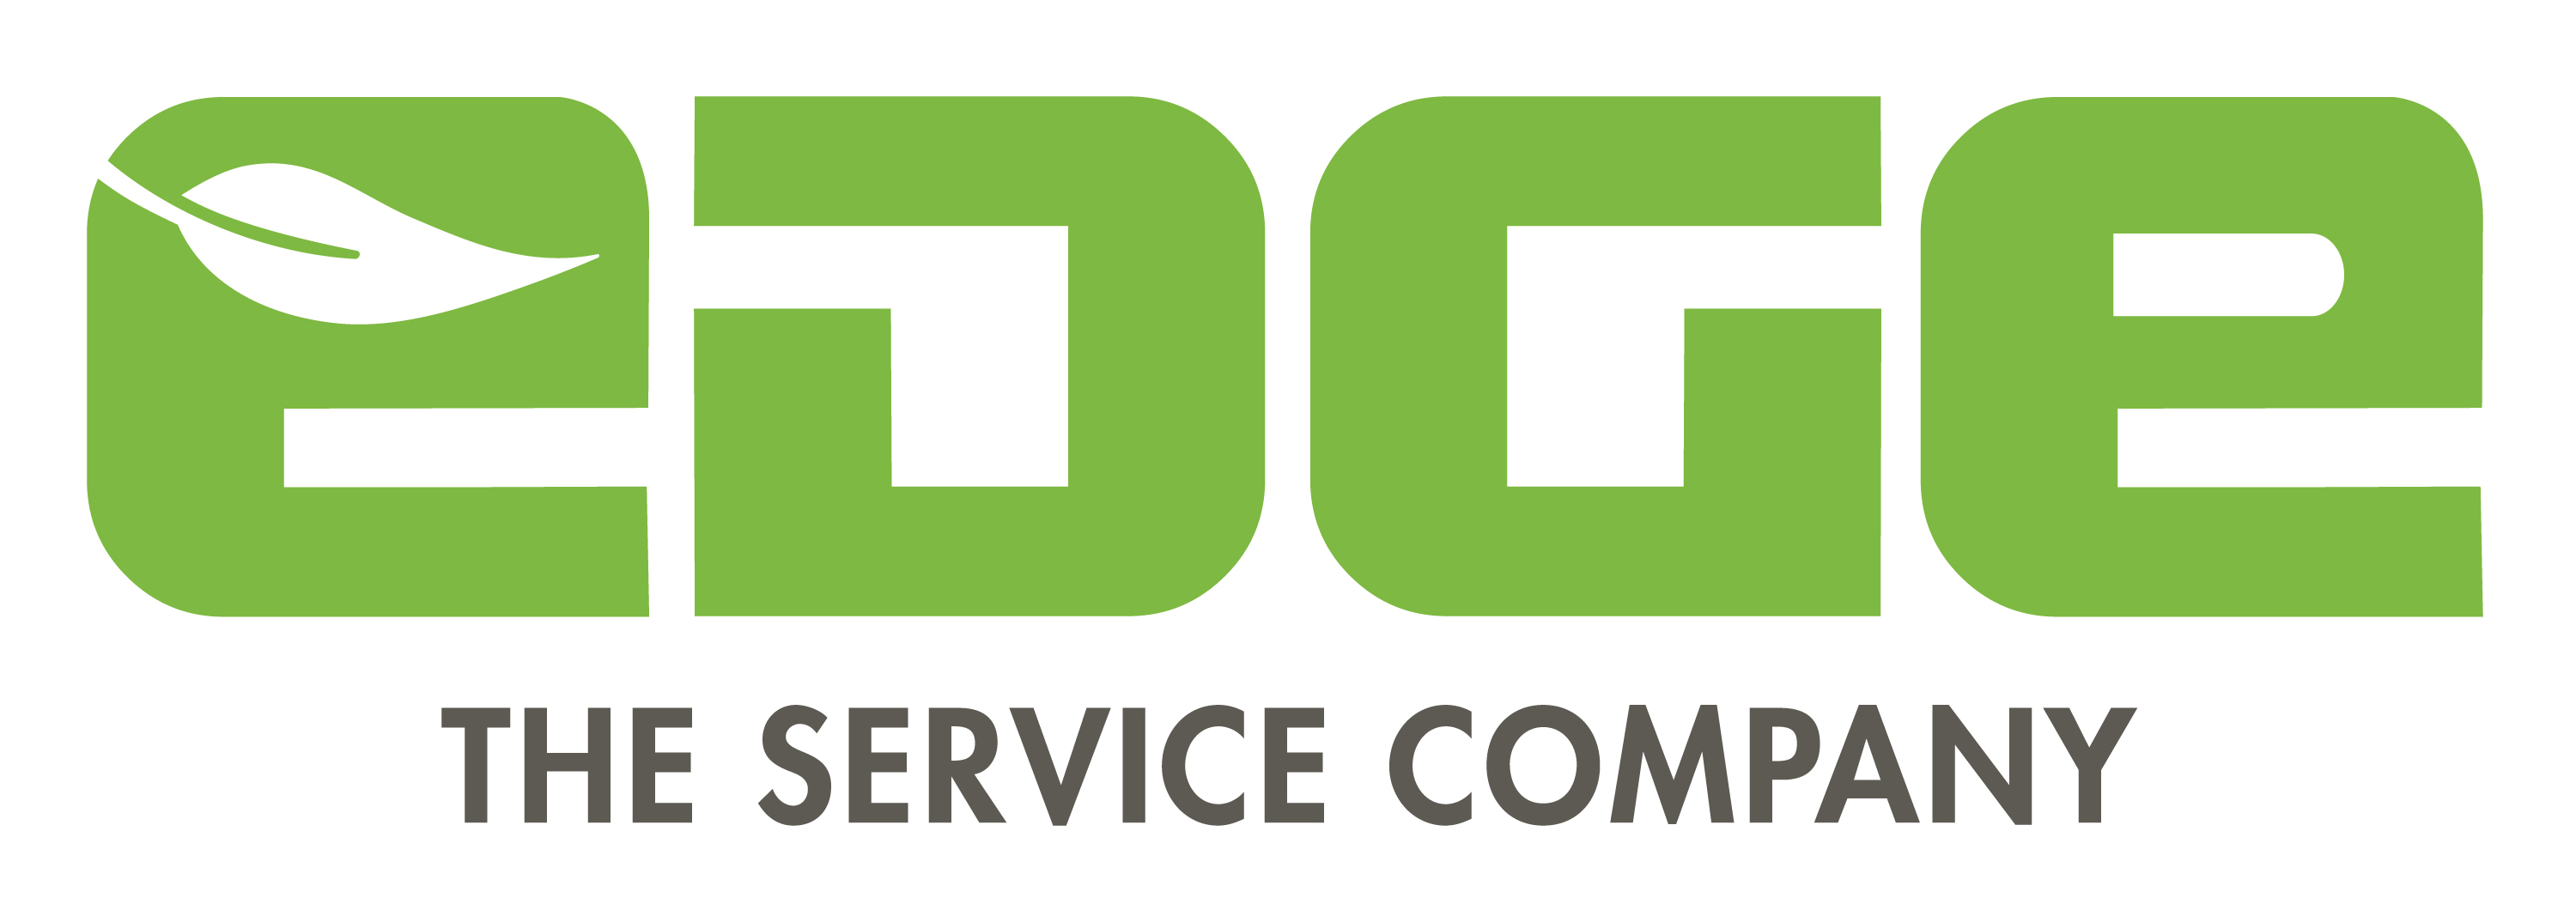 Edge reviews | Pest Control at 5815 W 6th Ave. #2D - Lakewood CO